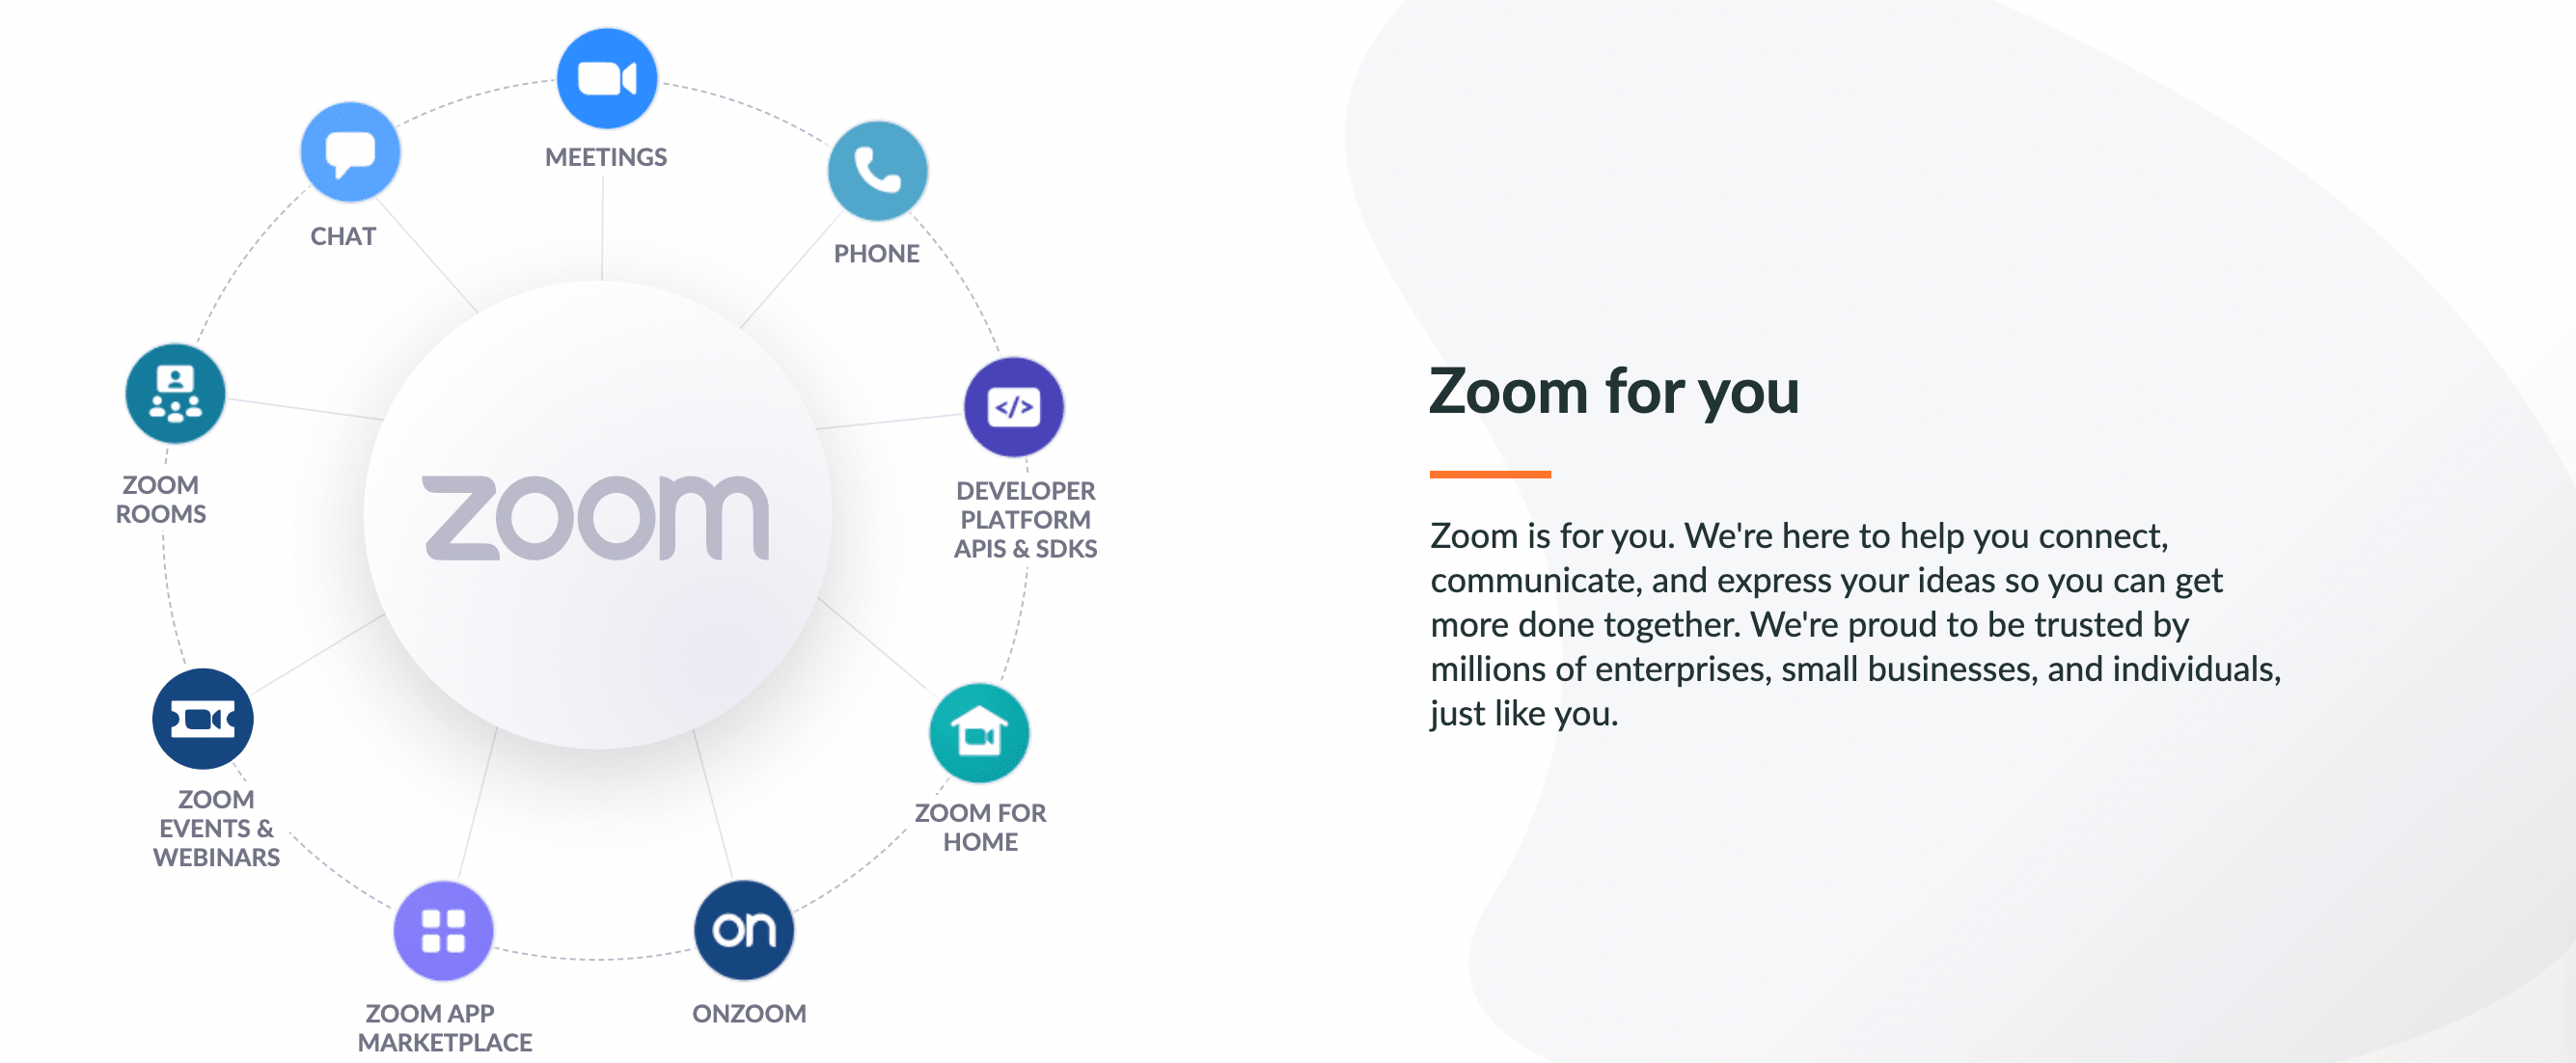 Example of bullet points used on Zoom's landing page.